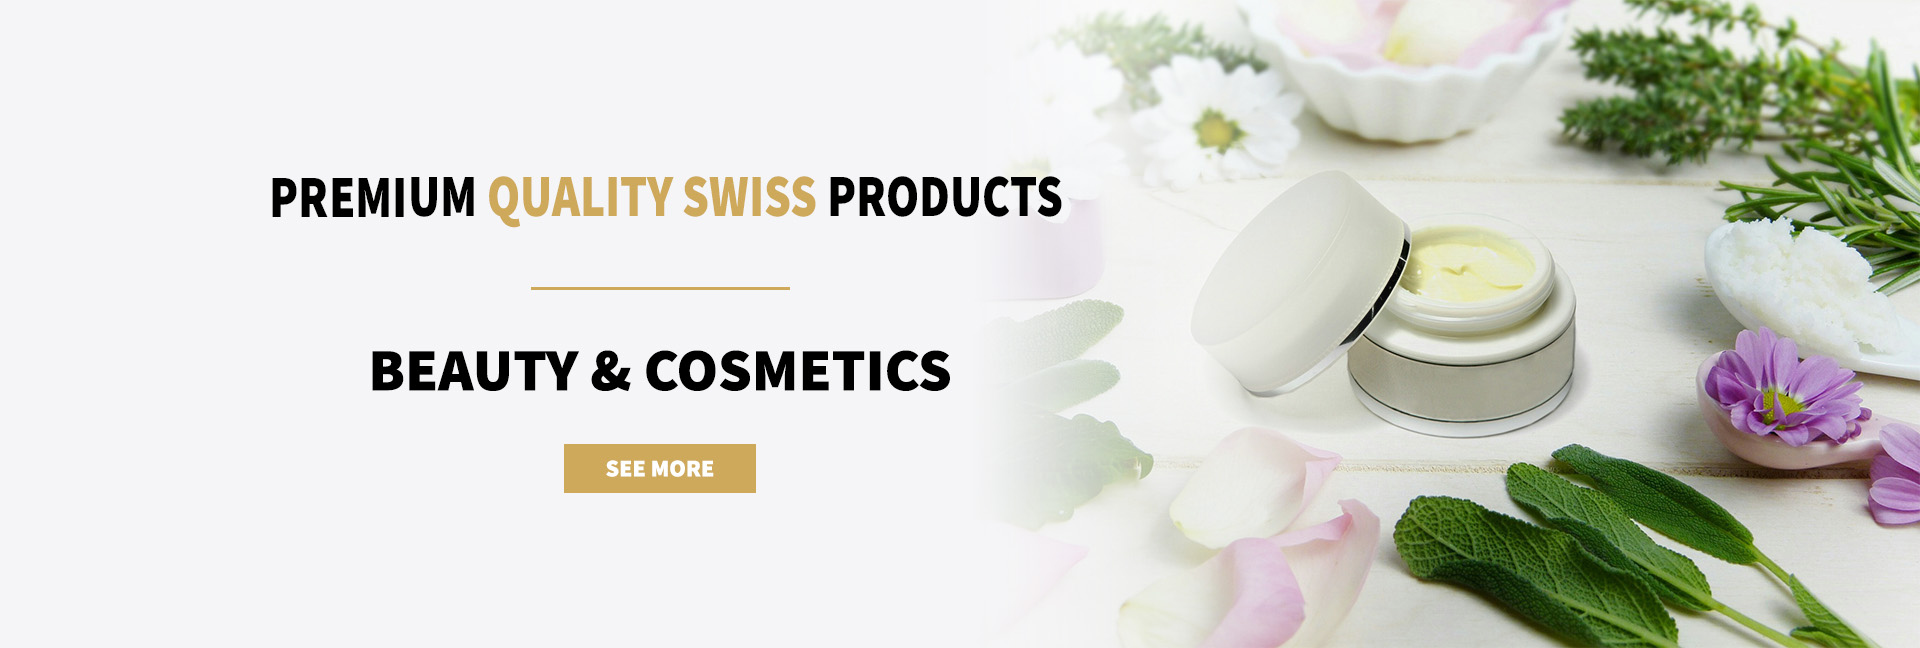 Swiss Beauty & Cosmetics